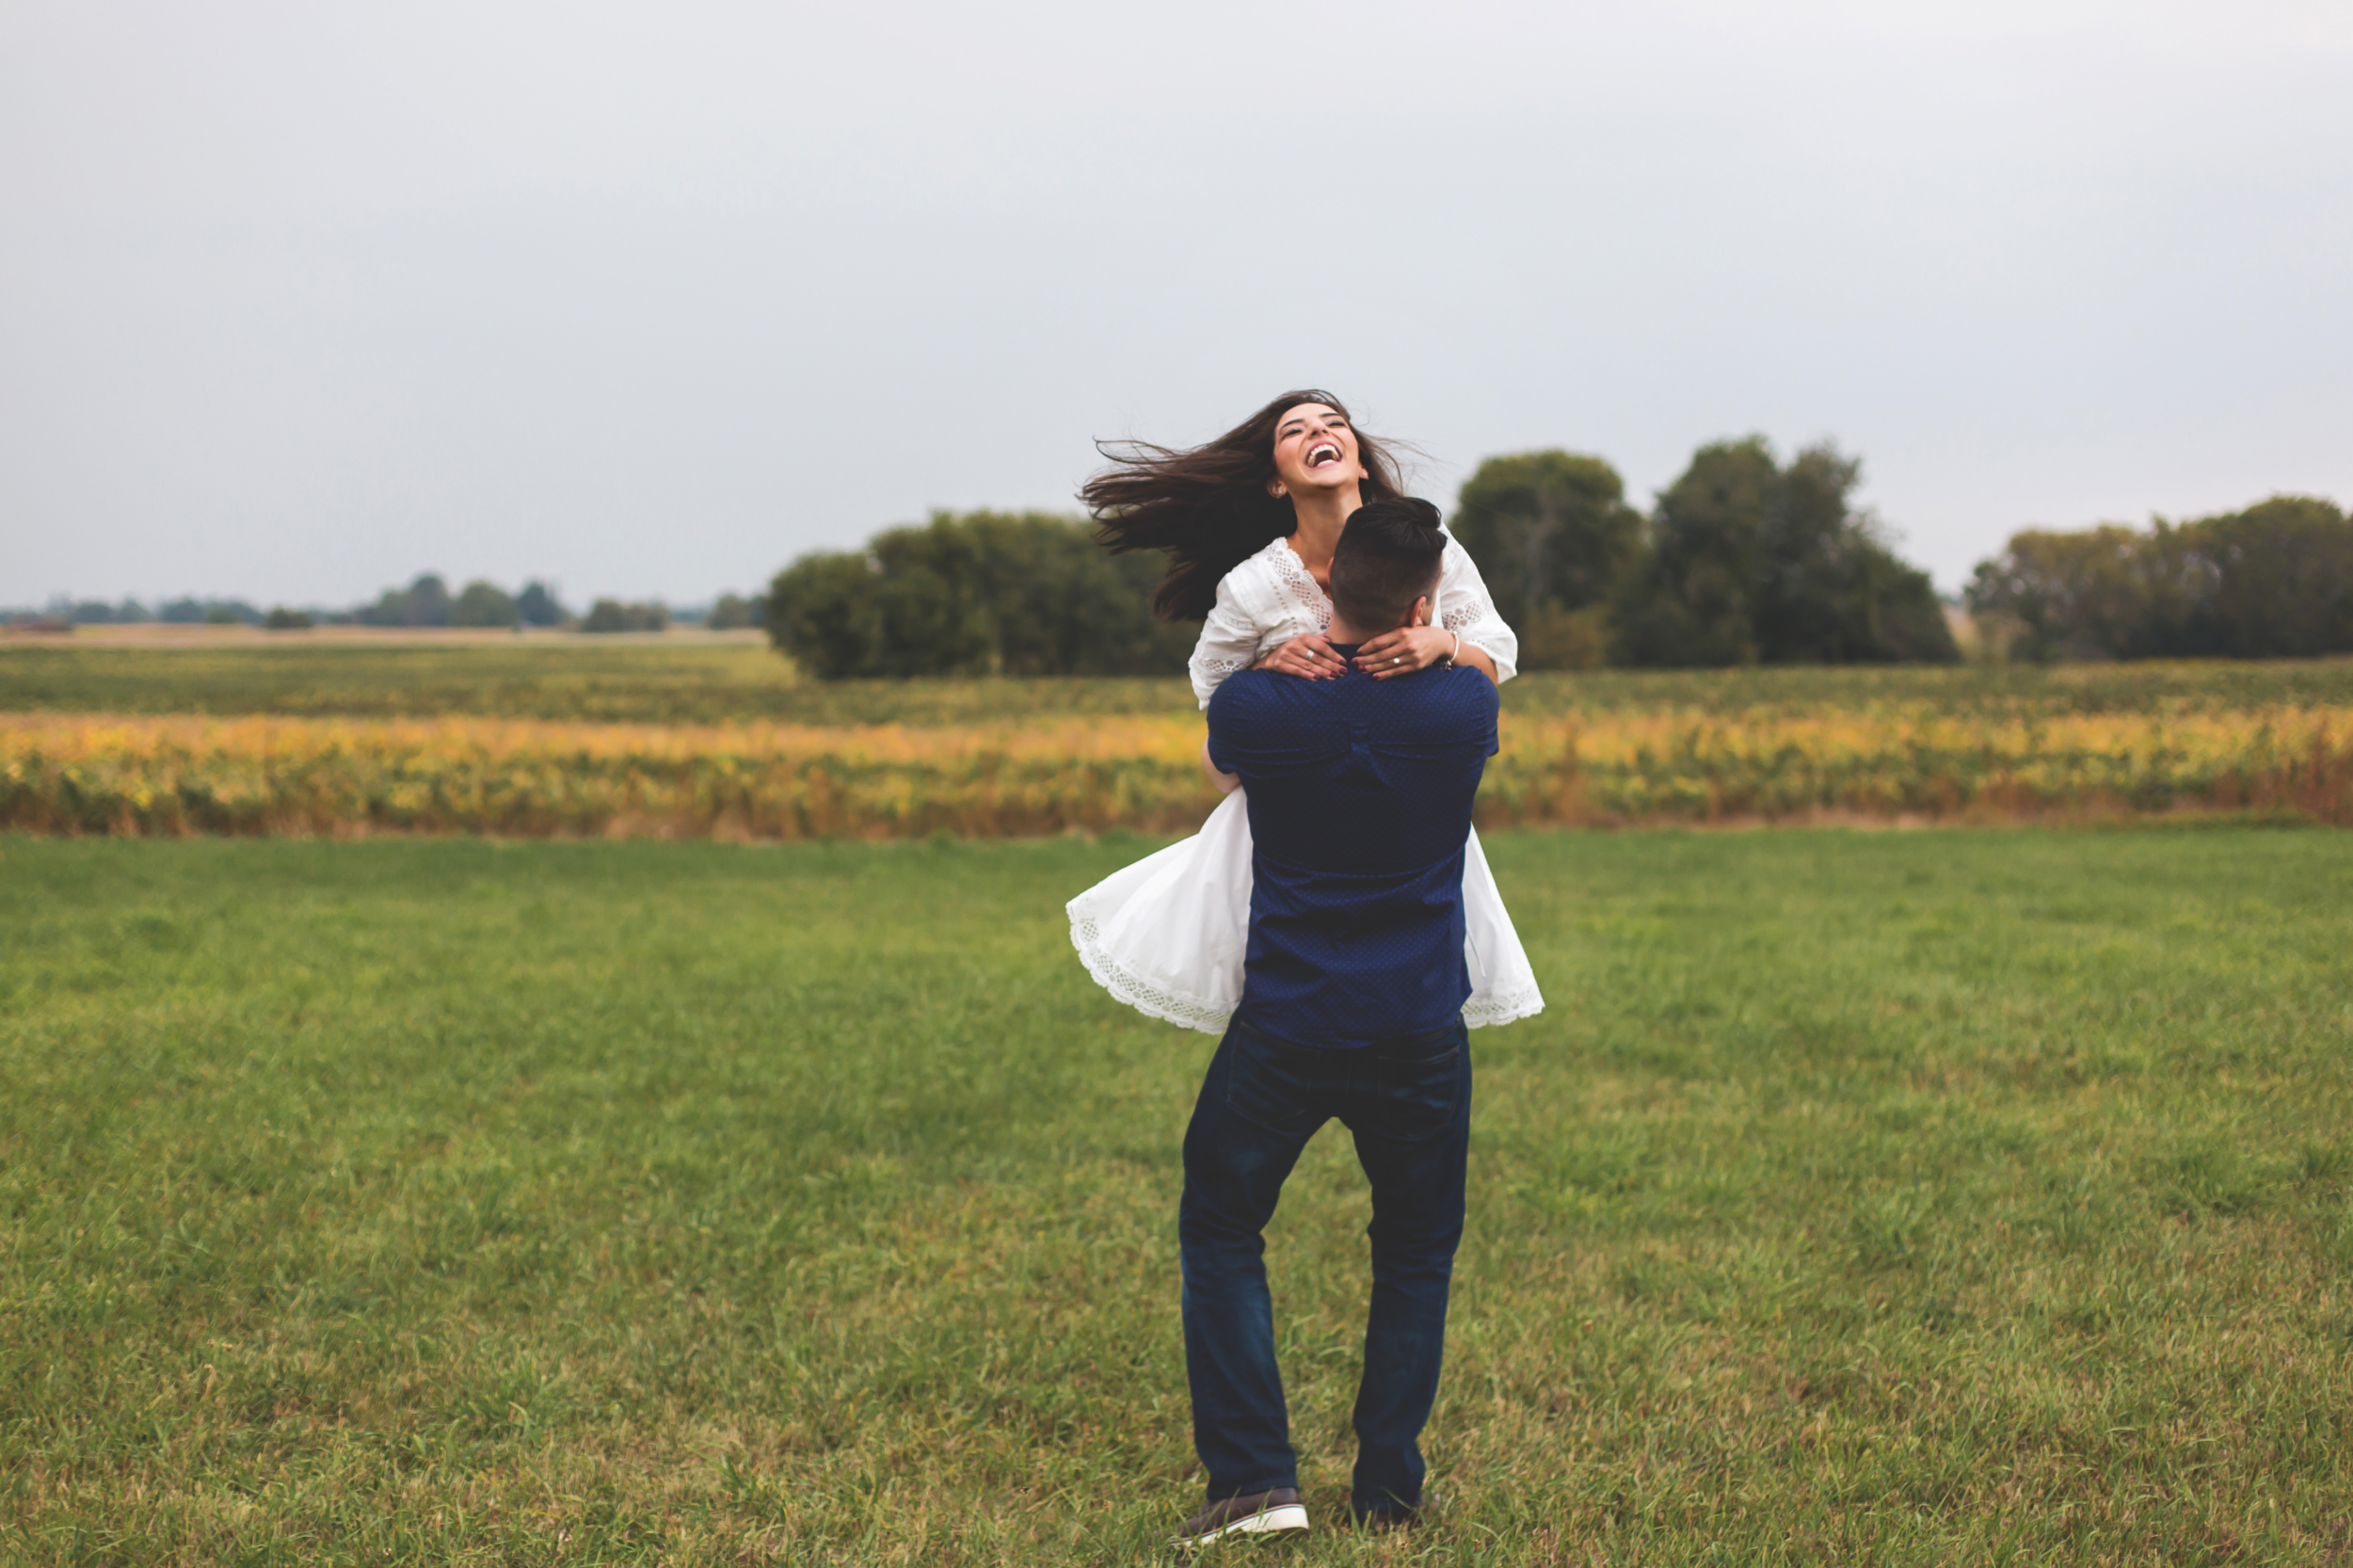 Engagement-Session-Hamilton-Burlington-Oakville-Toronto-Niagara-Wedding-Photographer-Engaged-Photography-Brantford-Airport-HamOnt-Engaged-Moments-by-Lauren-Photo-Image-26.png